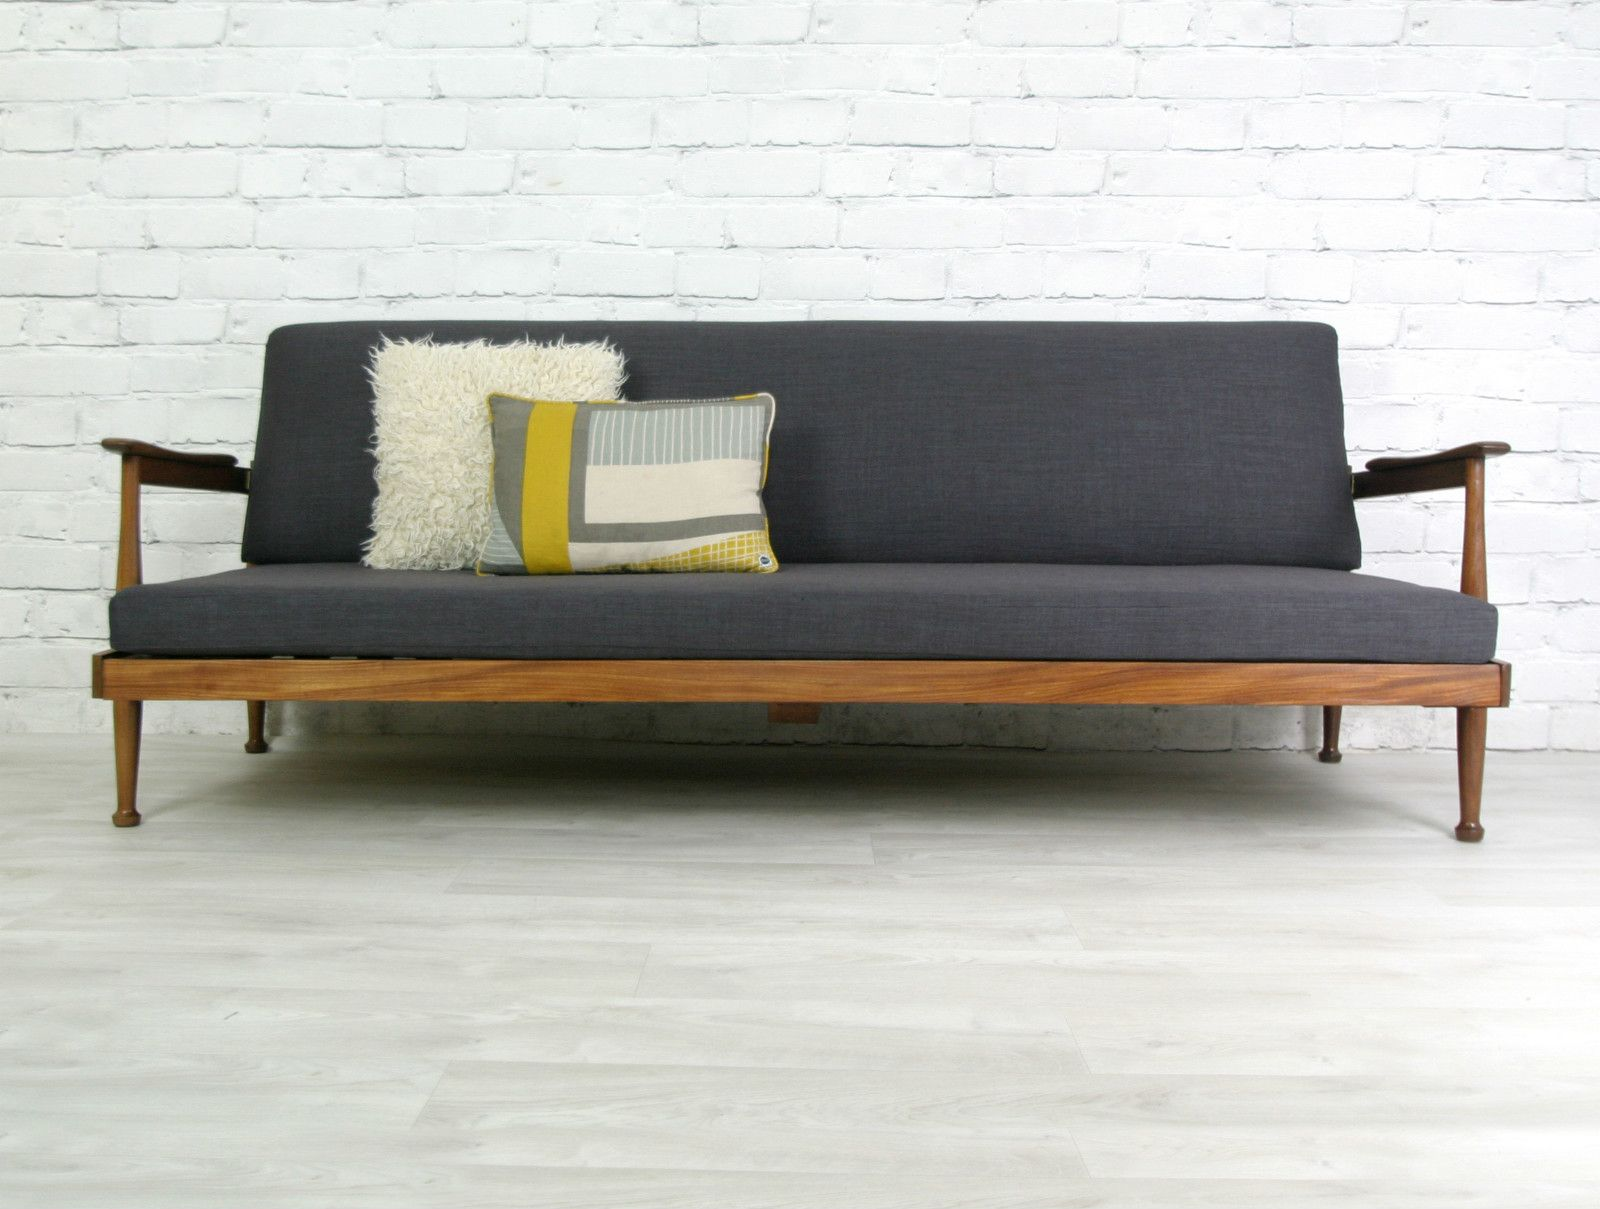 Modern functionality paired with classic-proven design: Sofa beds in retro style